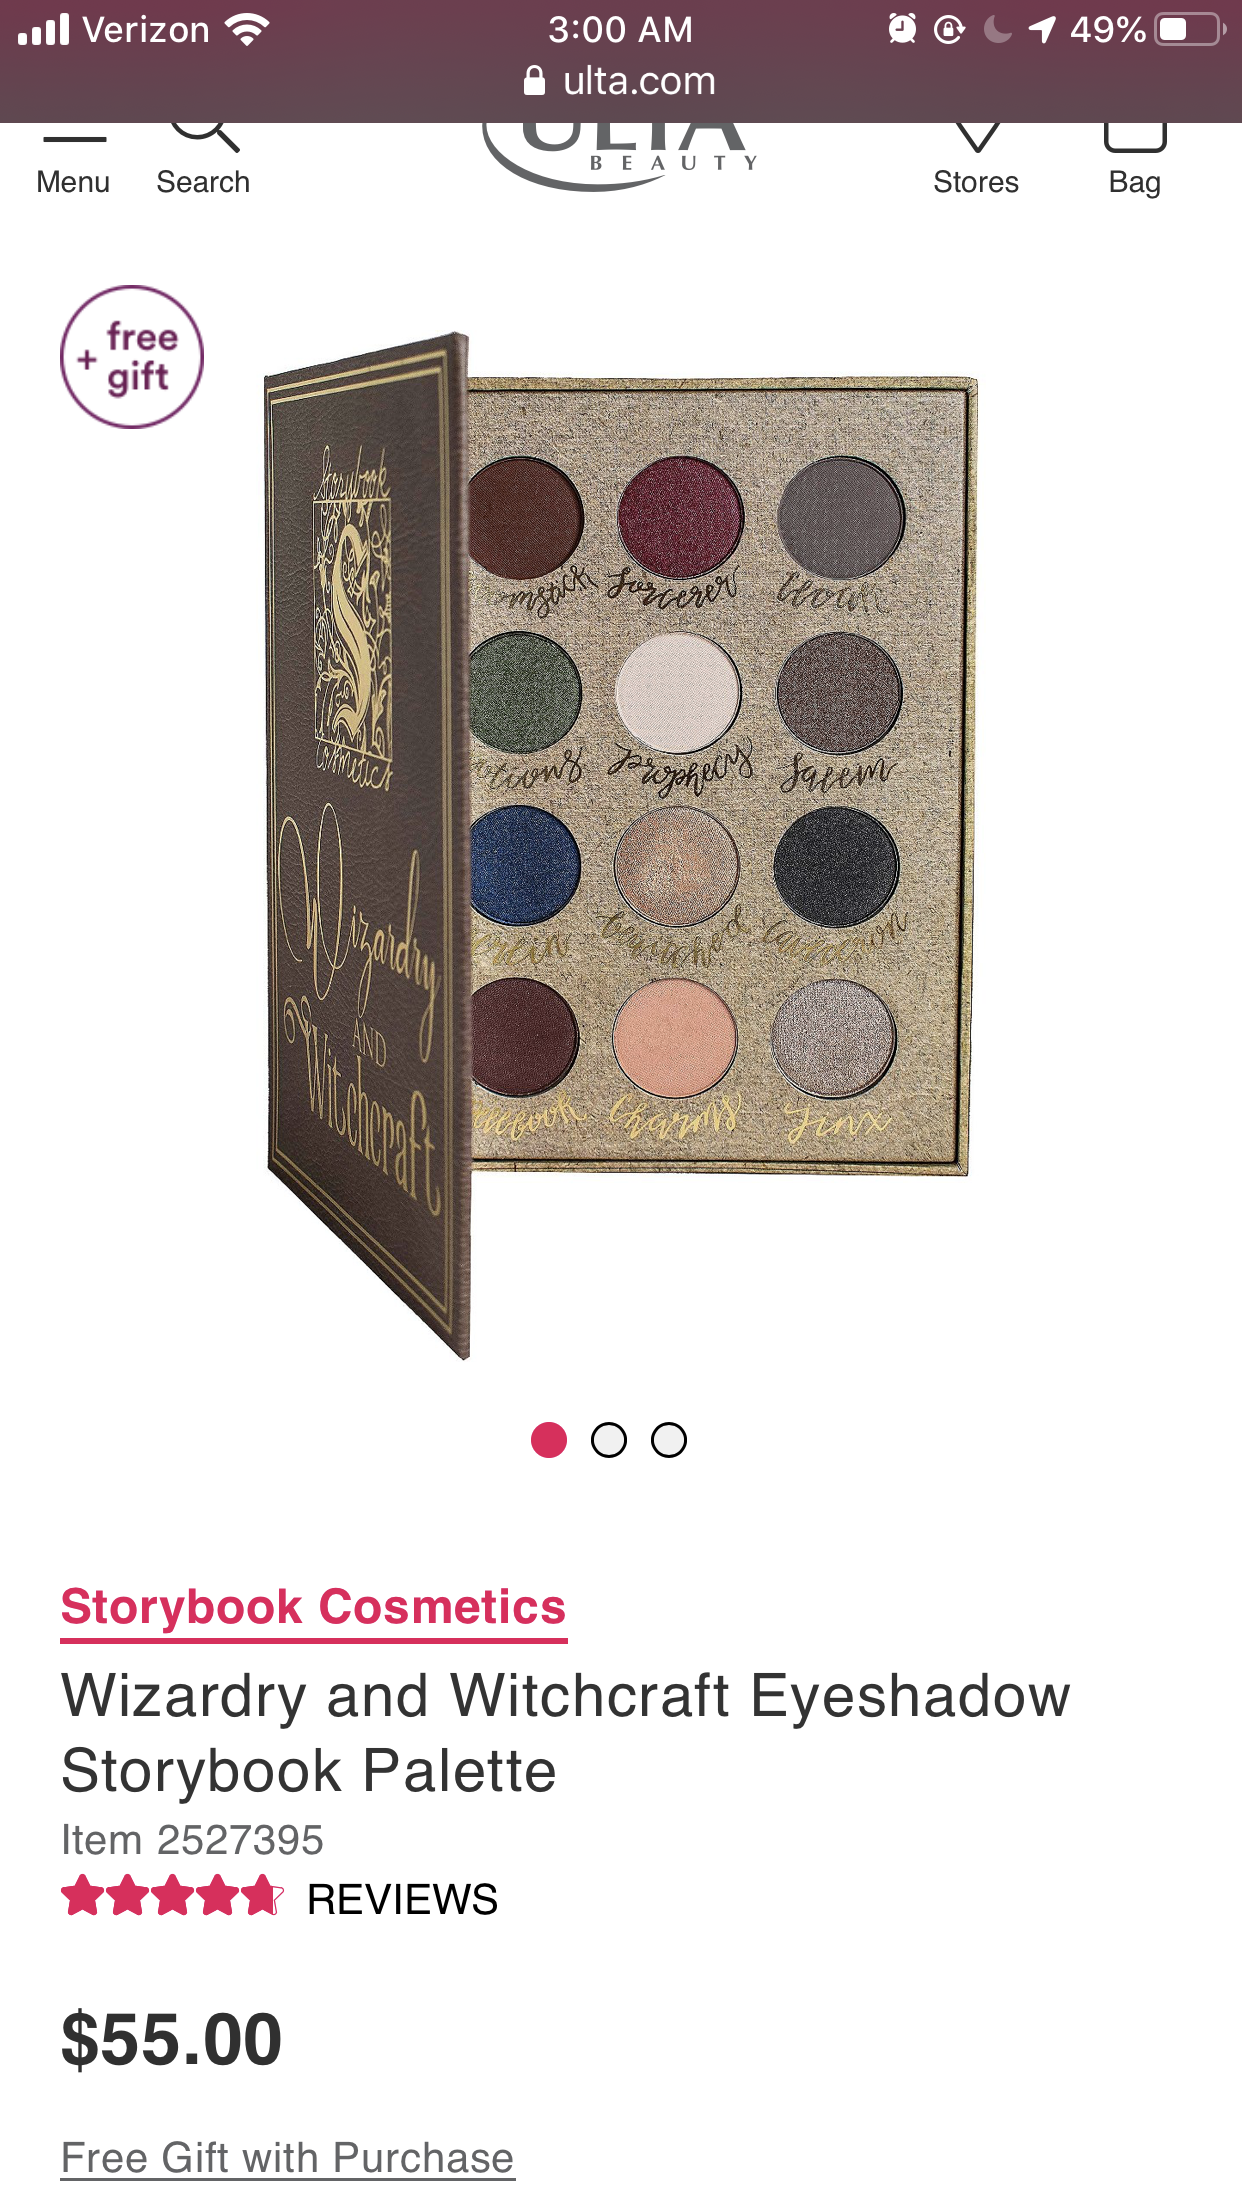 Storybook Cosmetics Wizardry And Witchcraft Eyeshadow Storybook Palette Ulta Beauty Storybook Cosmetics Eyeshadow Beauty Gift